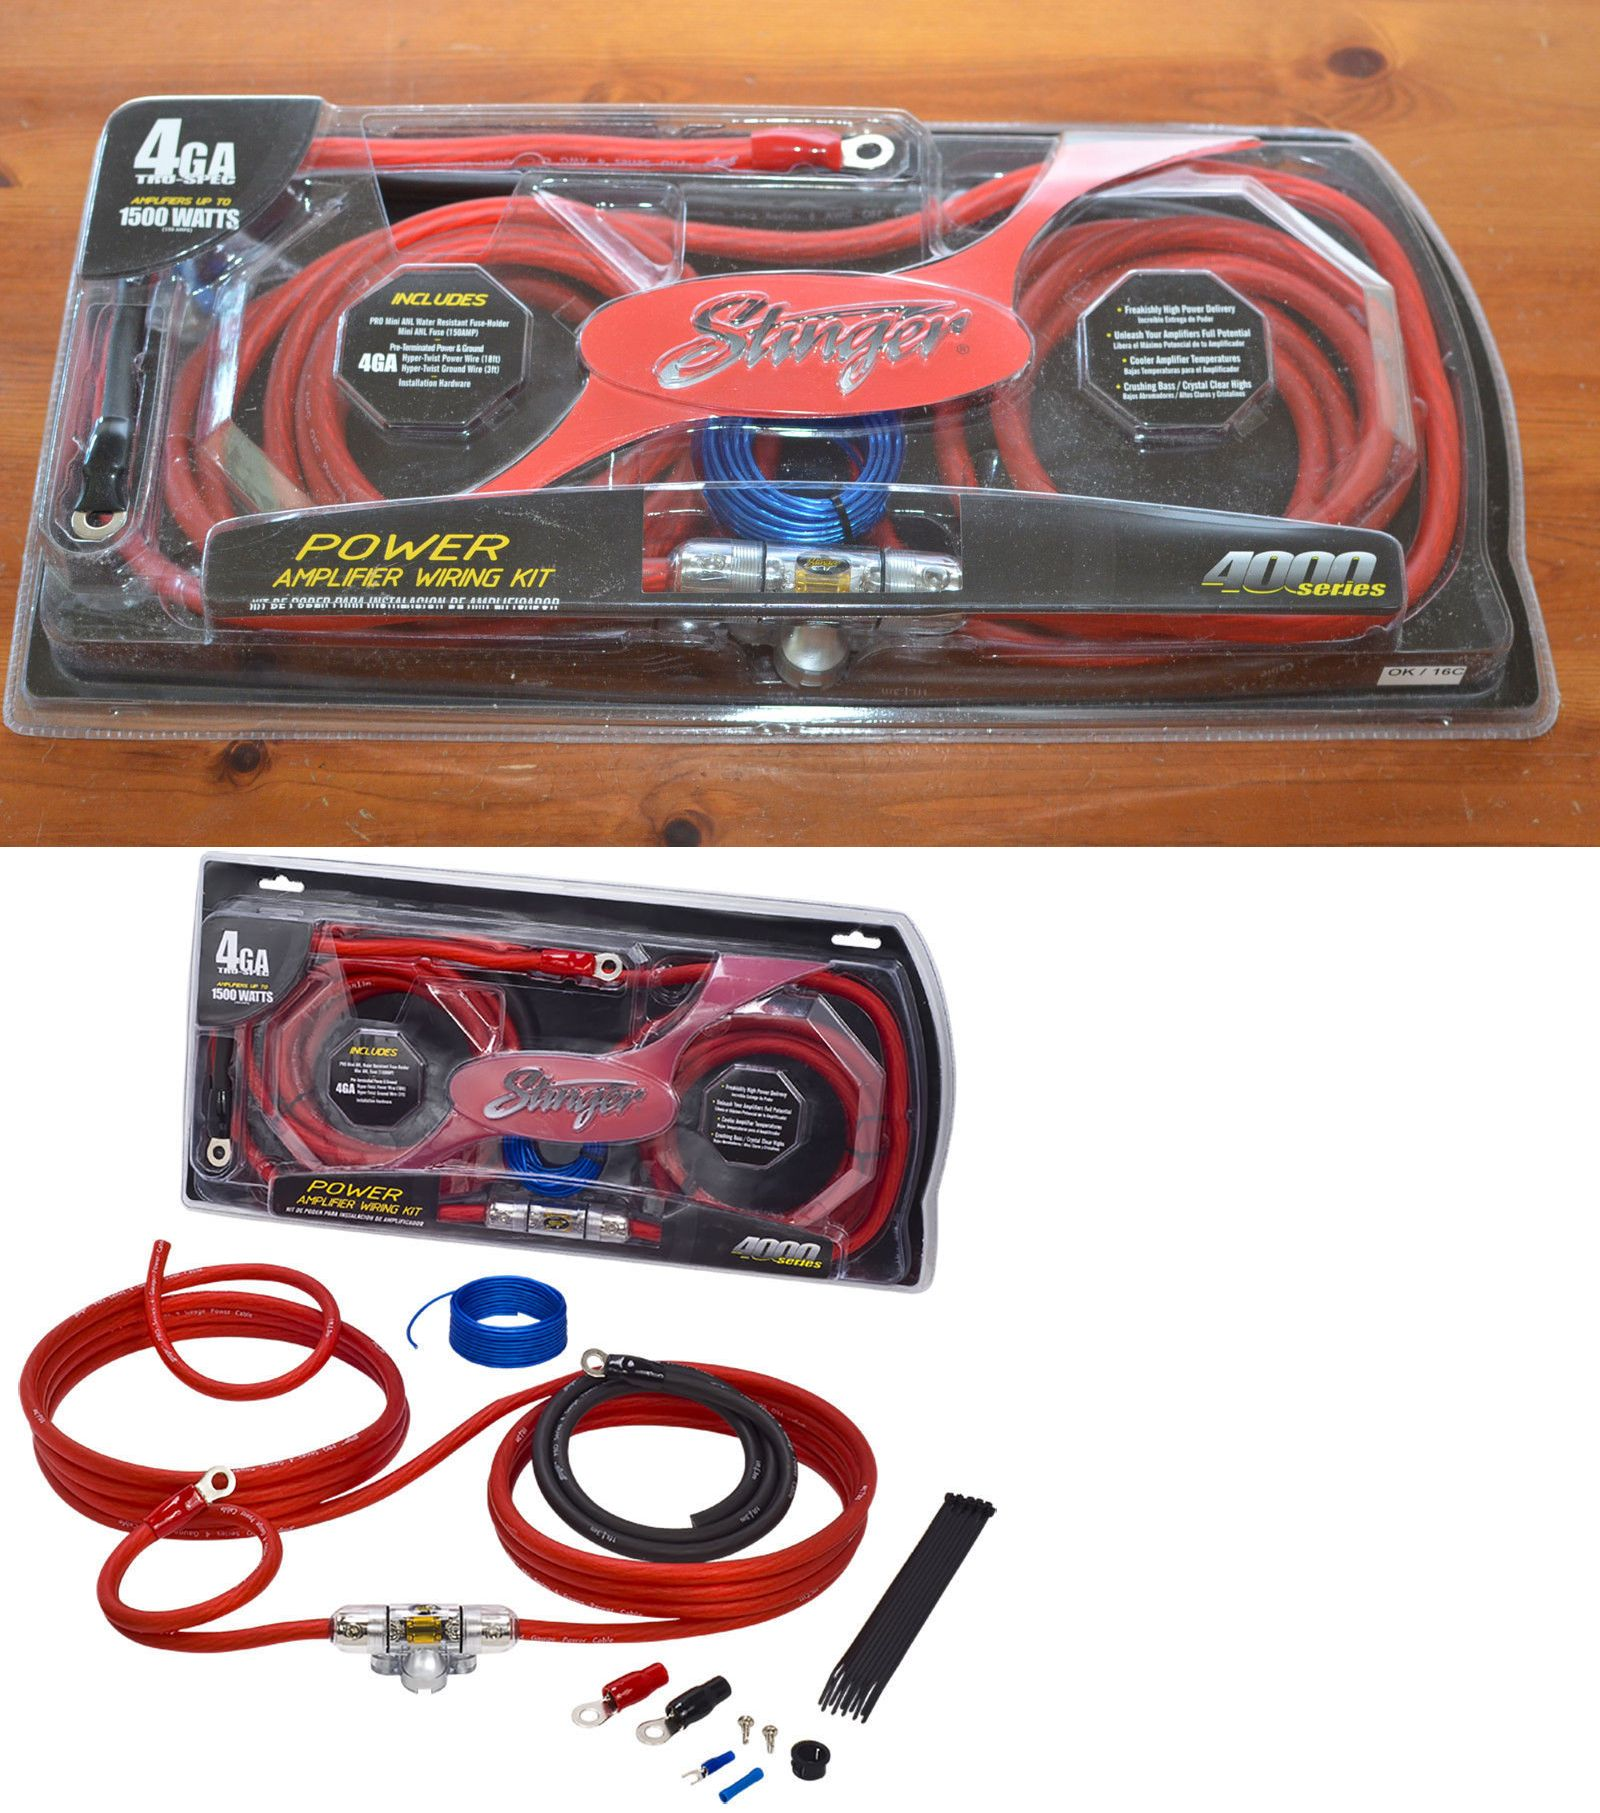 Tsunami Amp Kit Gauge Ga Car Amplifier Installation Wiring Wire Kitrca Walmart Kits New Stinger Power Series High Performance 1600x1813